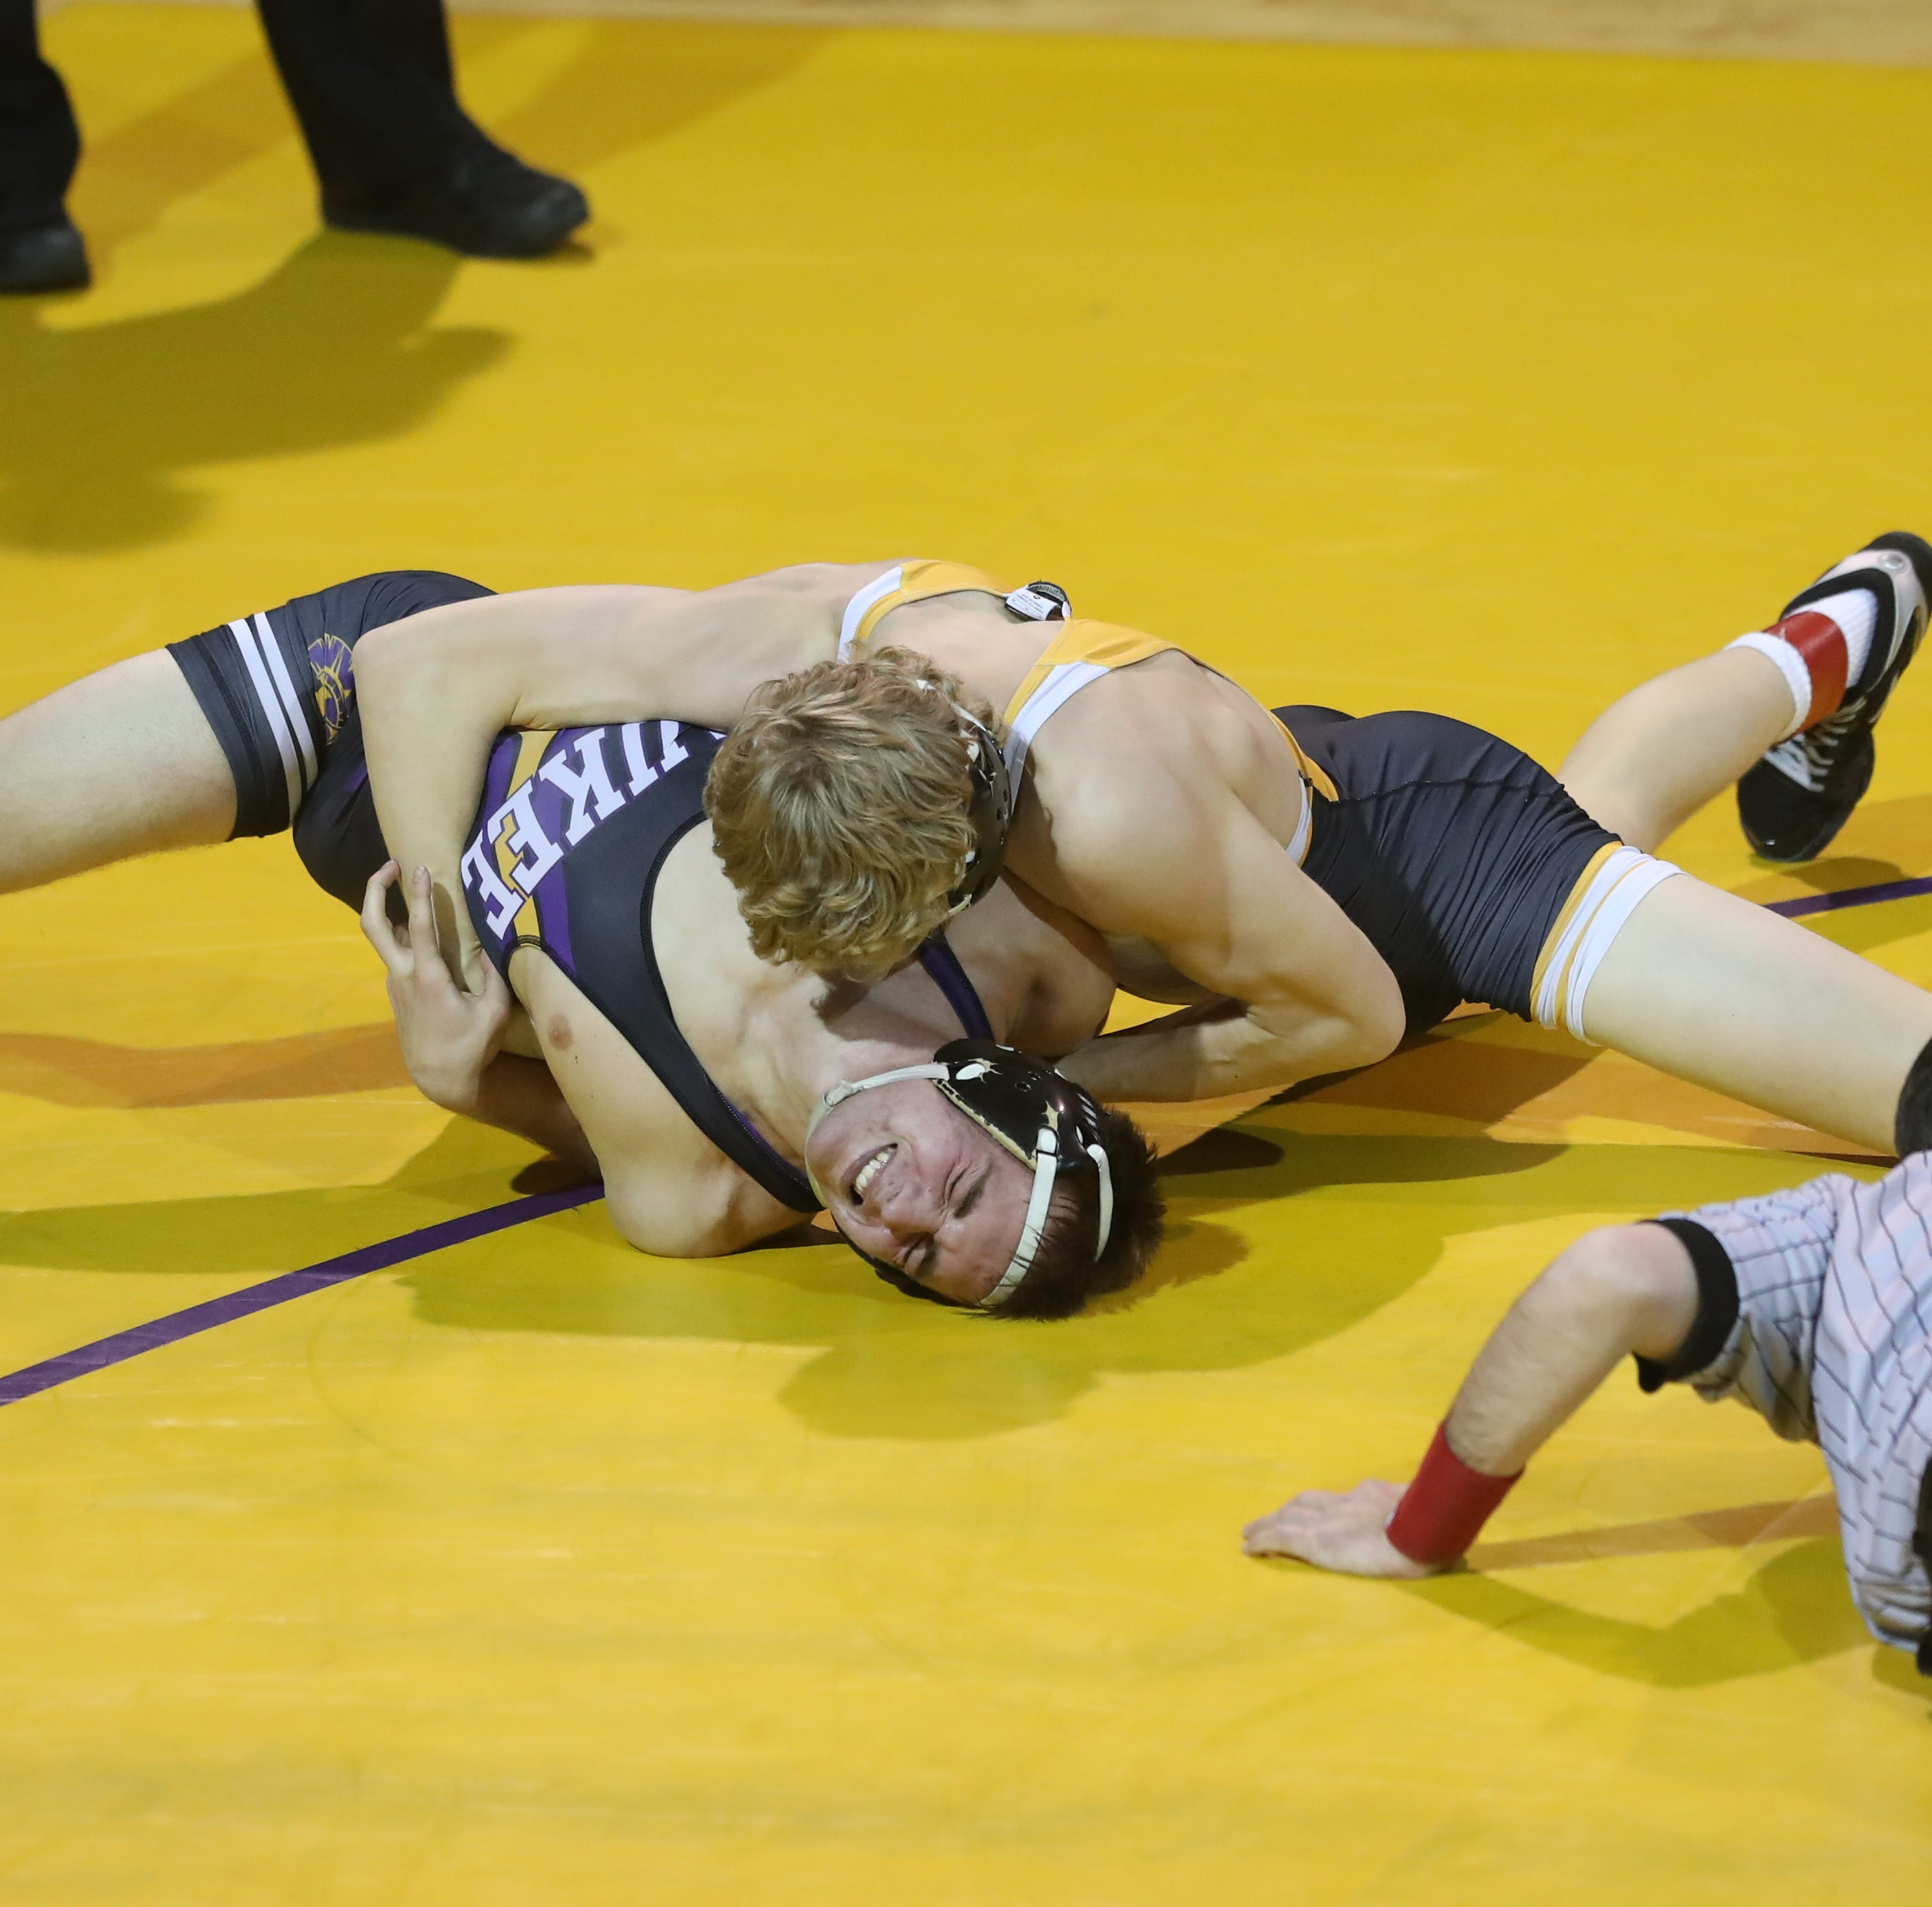 Southeast Polk thumps Waukee in Class 3A wrestling battle